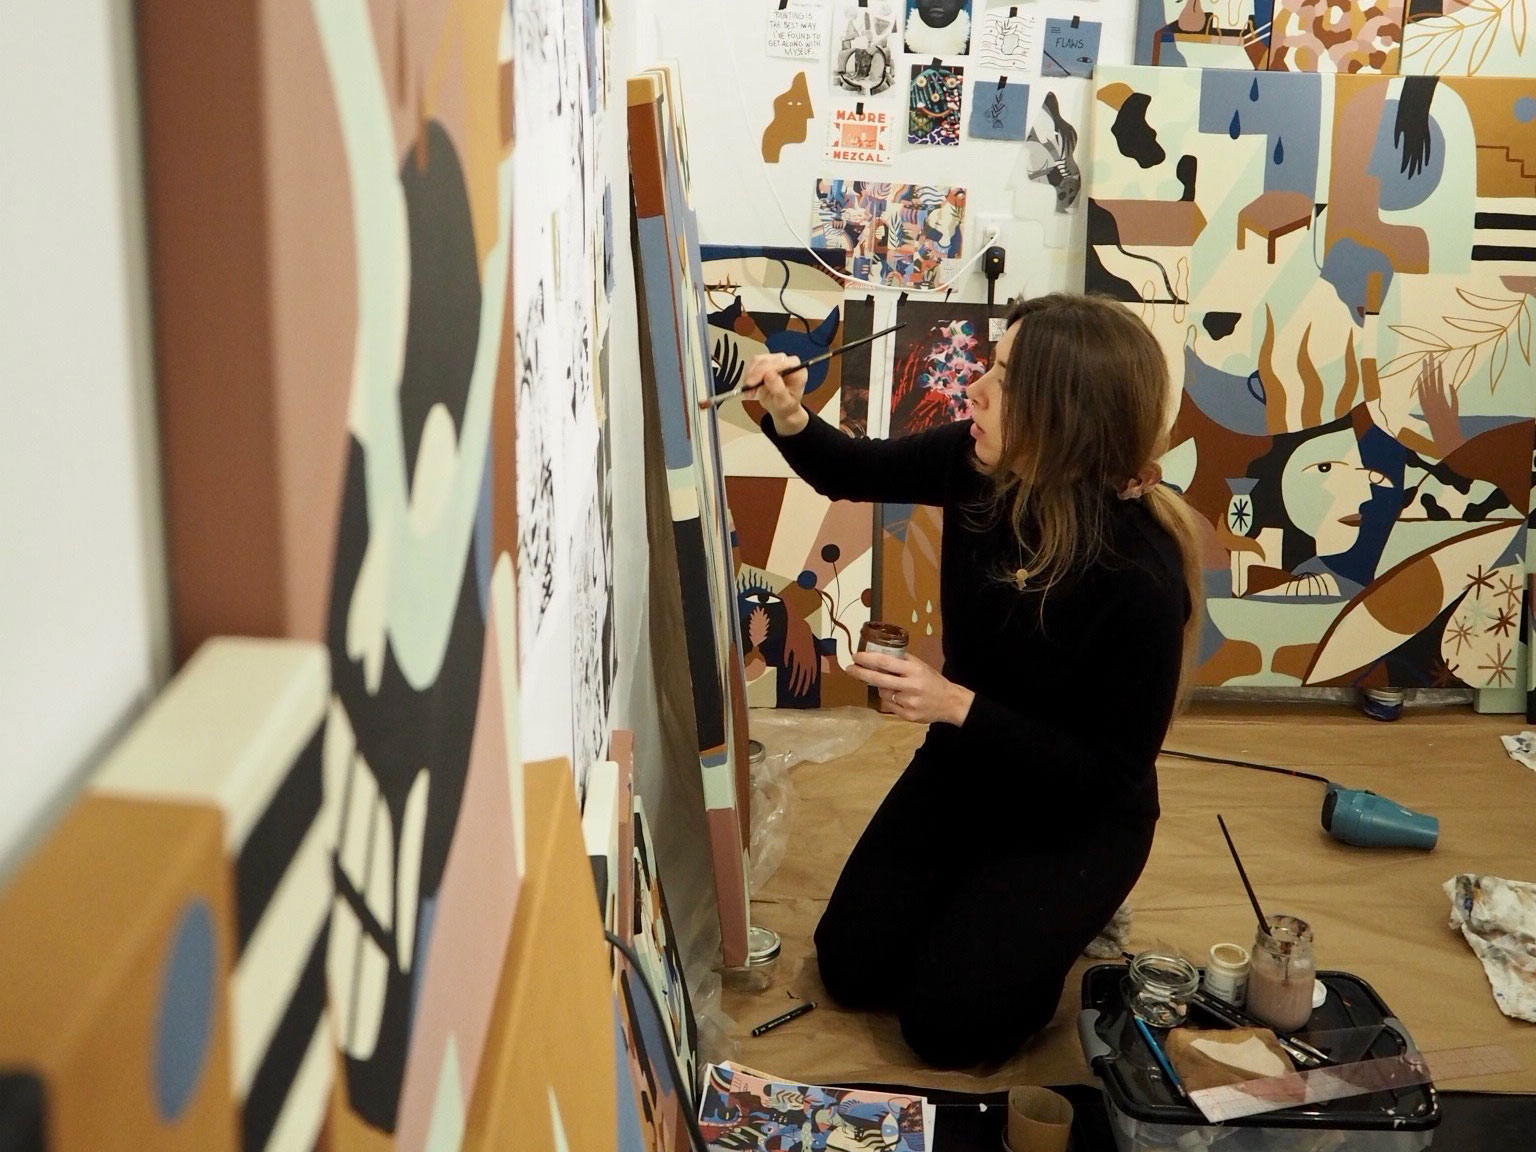 Portrait of French artist madi in her studio working on a canvas